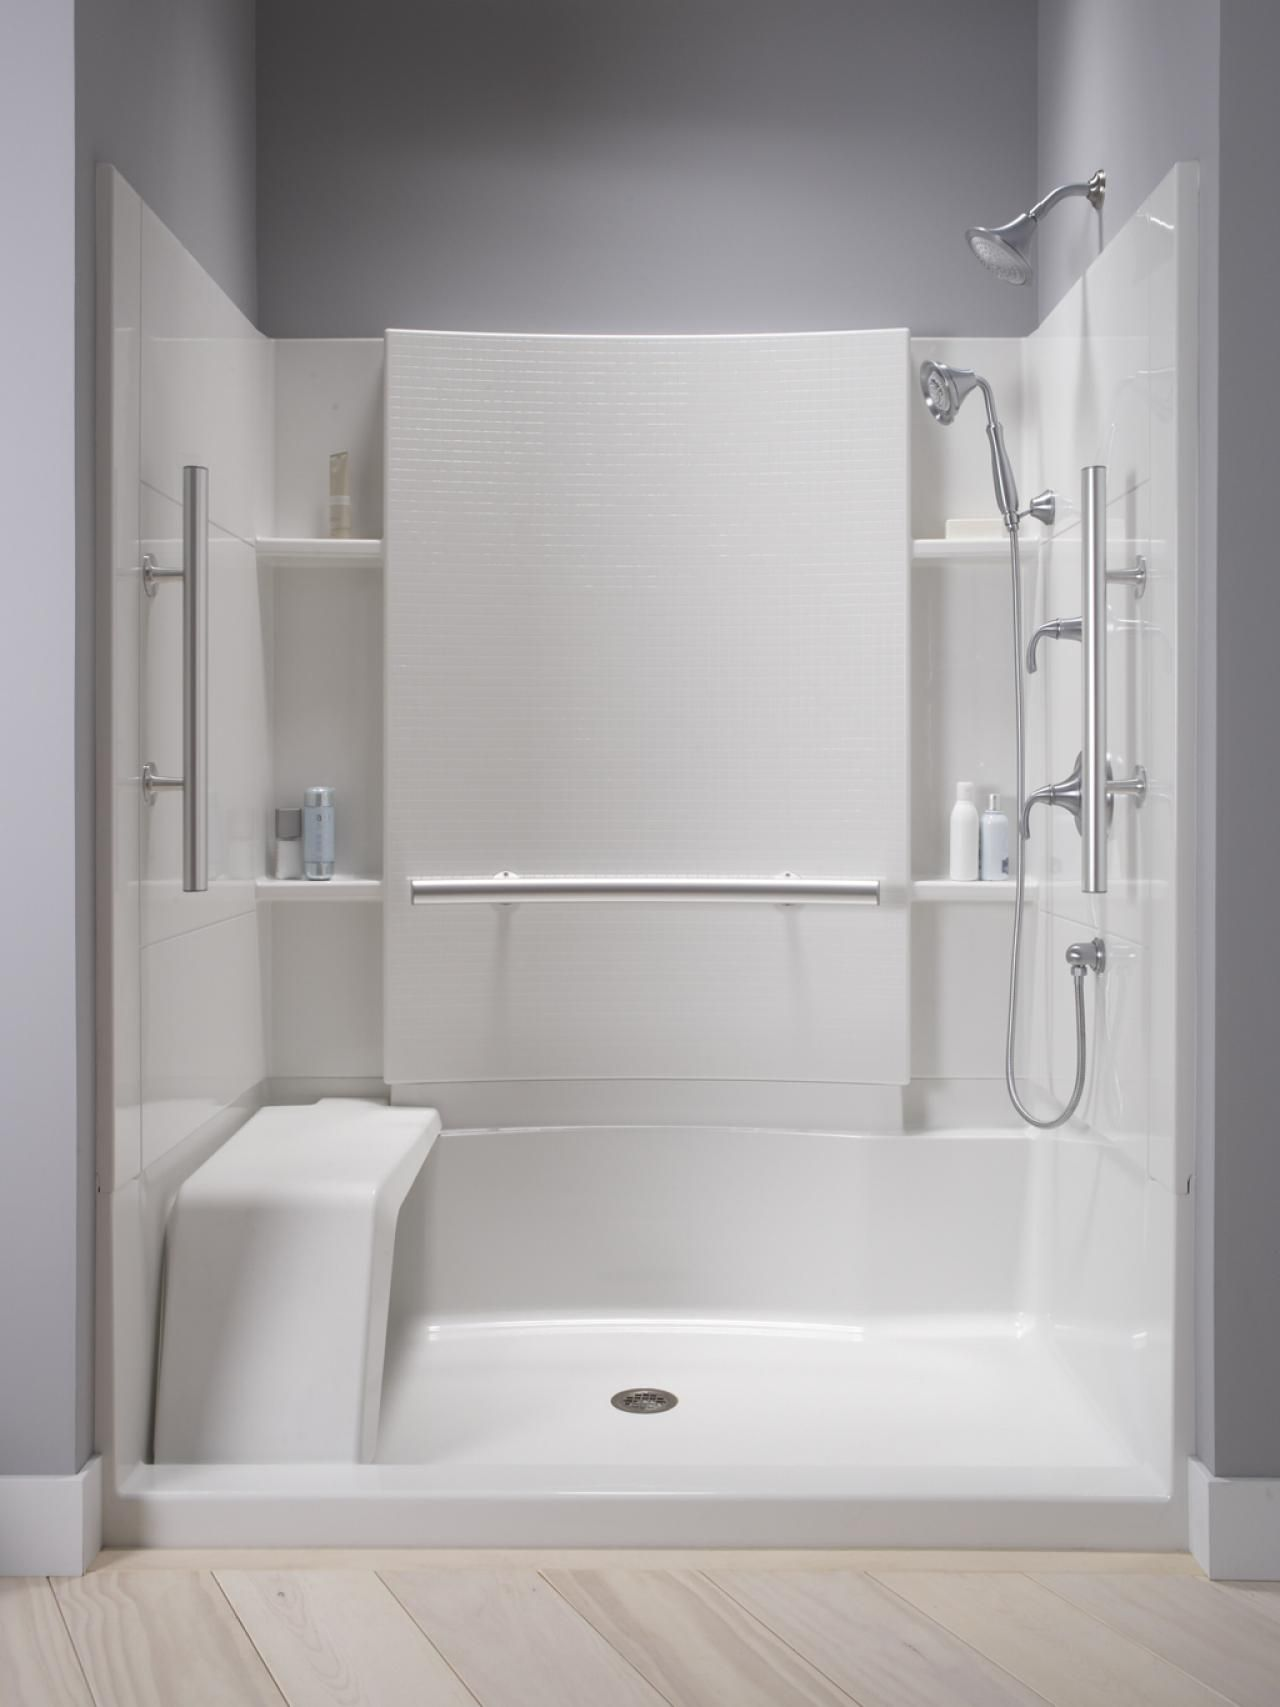 Bathroom Shower Designs | Bath, Hgtv and Tubs